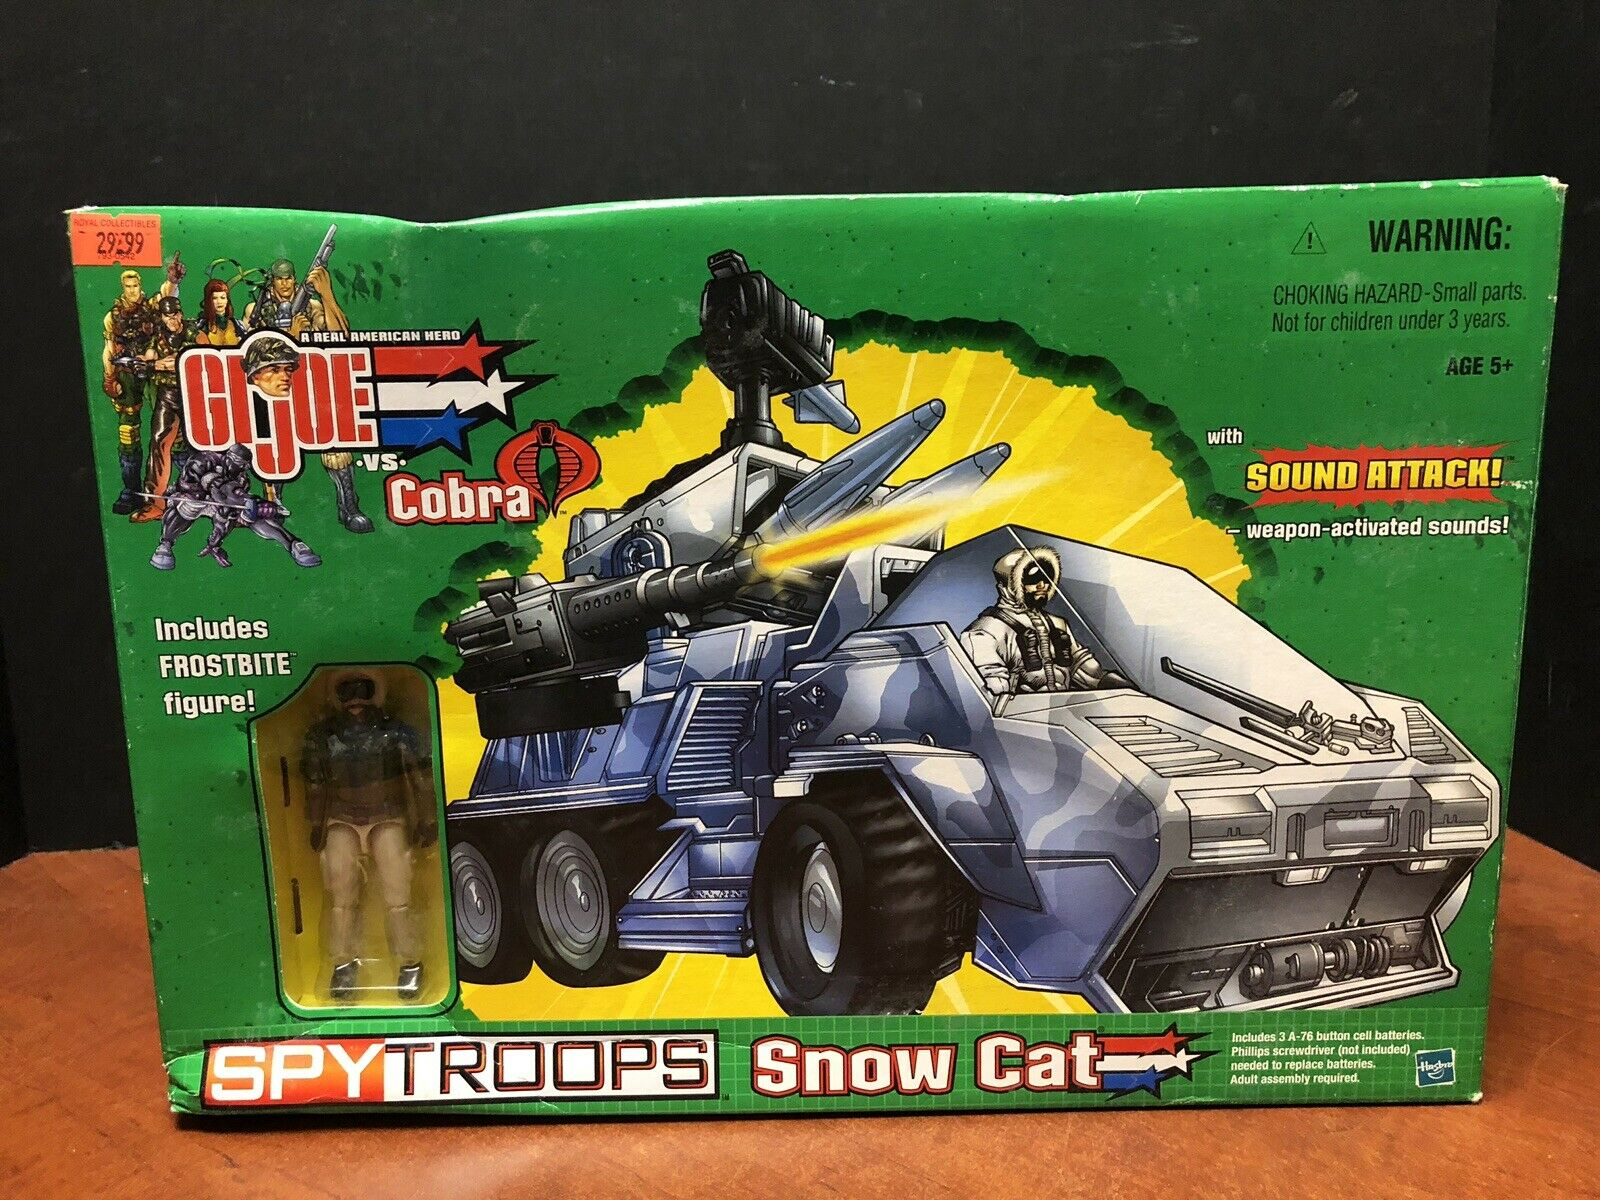 GI JOE 2002 Spy troupes Snow Cat Comme  neuf IN BOX dela 0400  2018 magasin